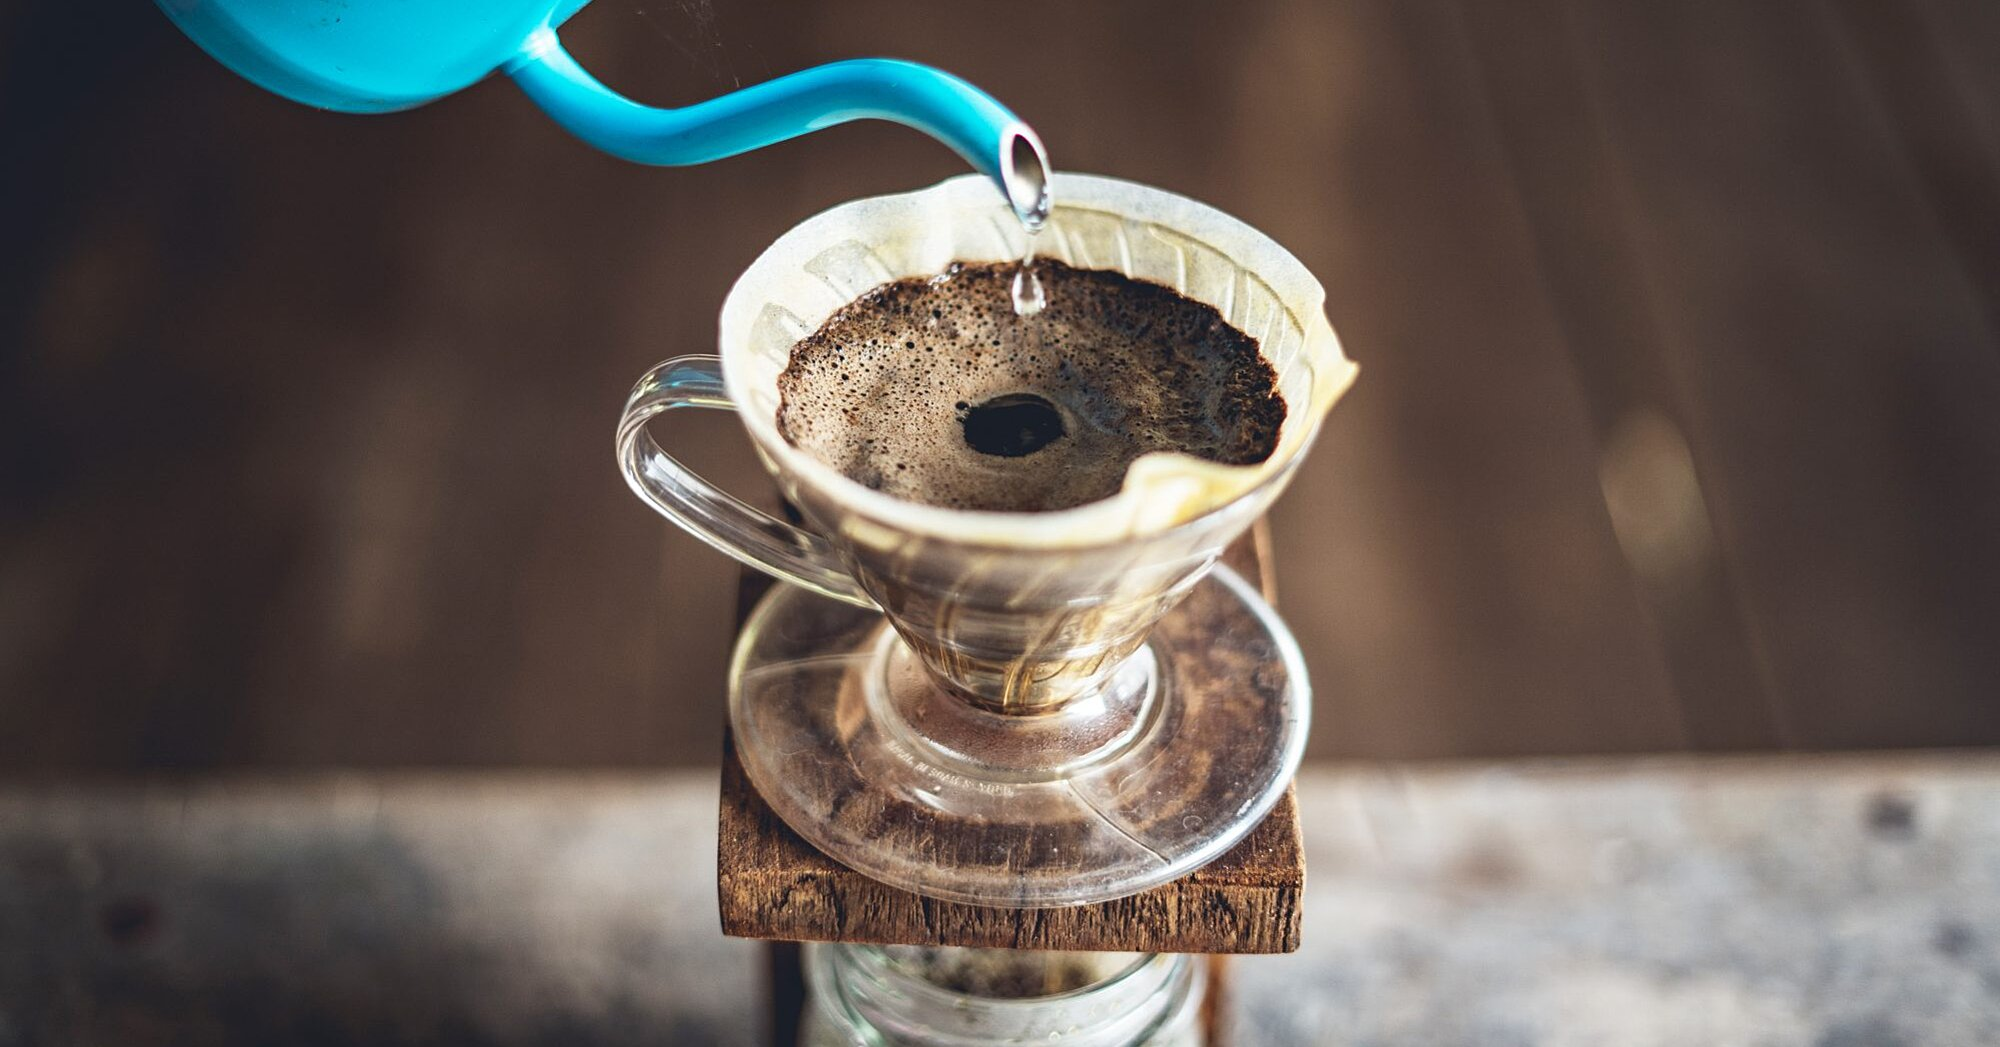 How to Make the Perfect Pour-Over Coffee at Home